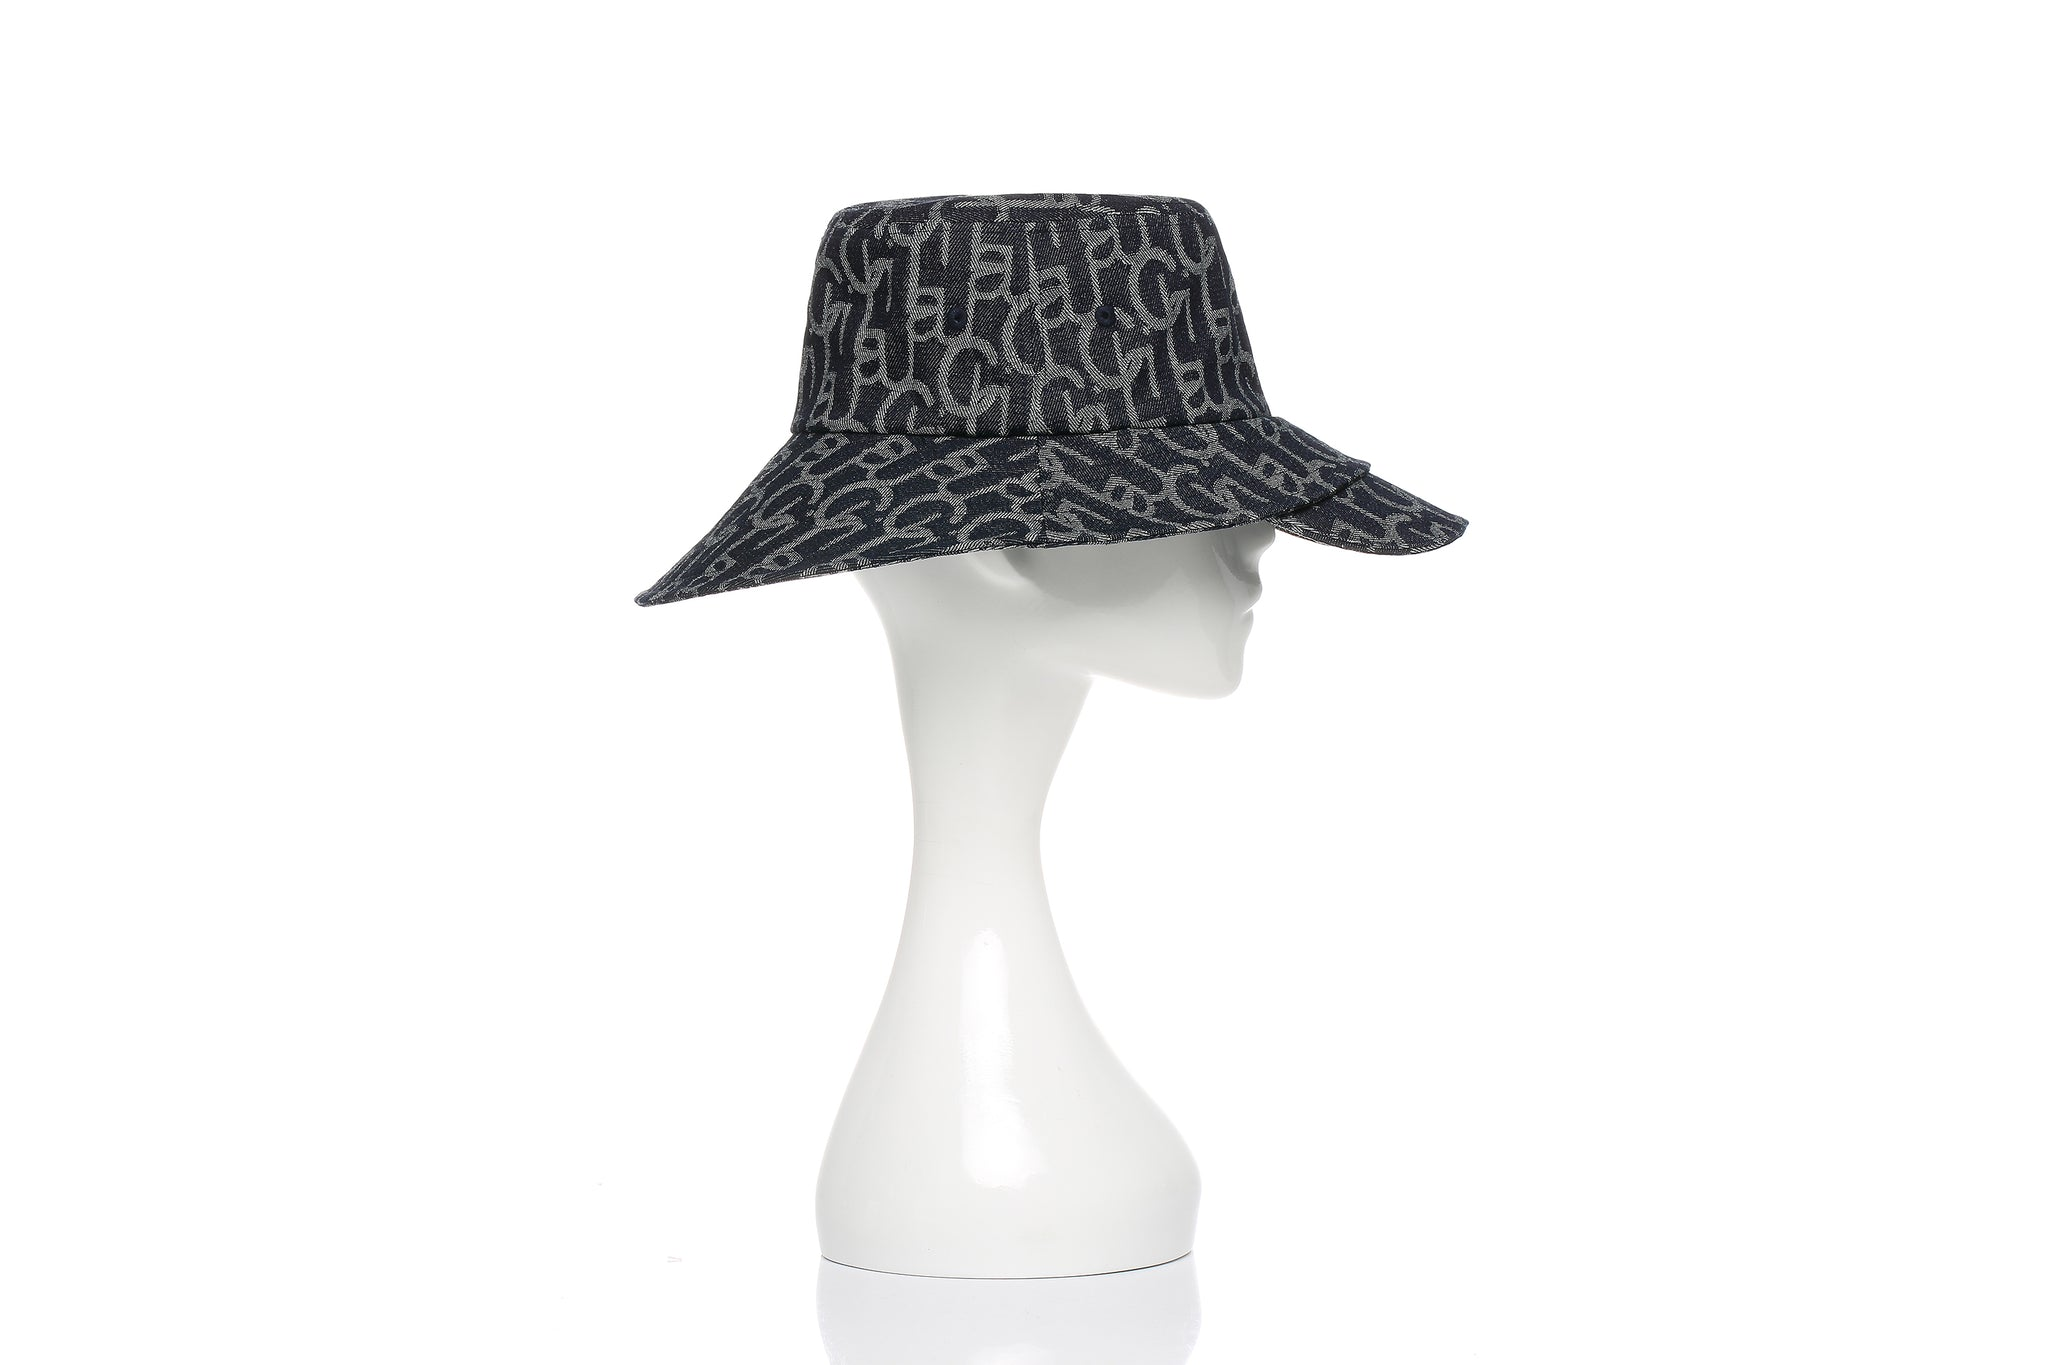 Chichi Laulau Jacquard Bucket Hat with Brim, Big Brim, Dark Blue